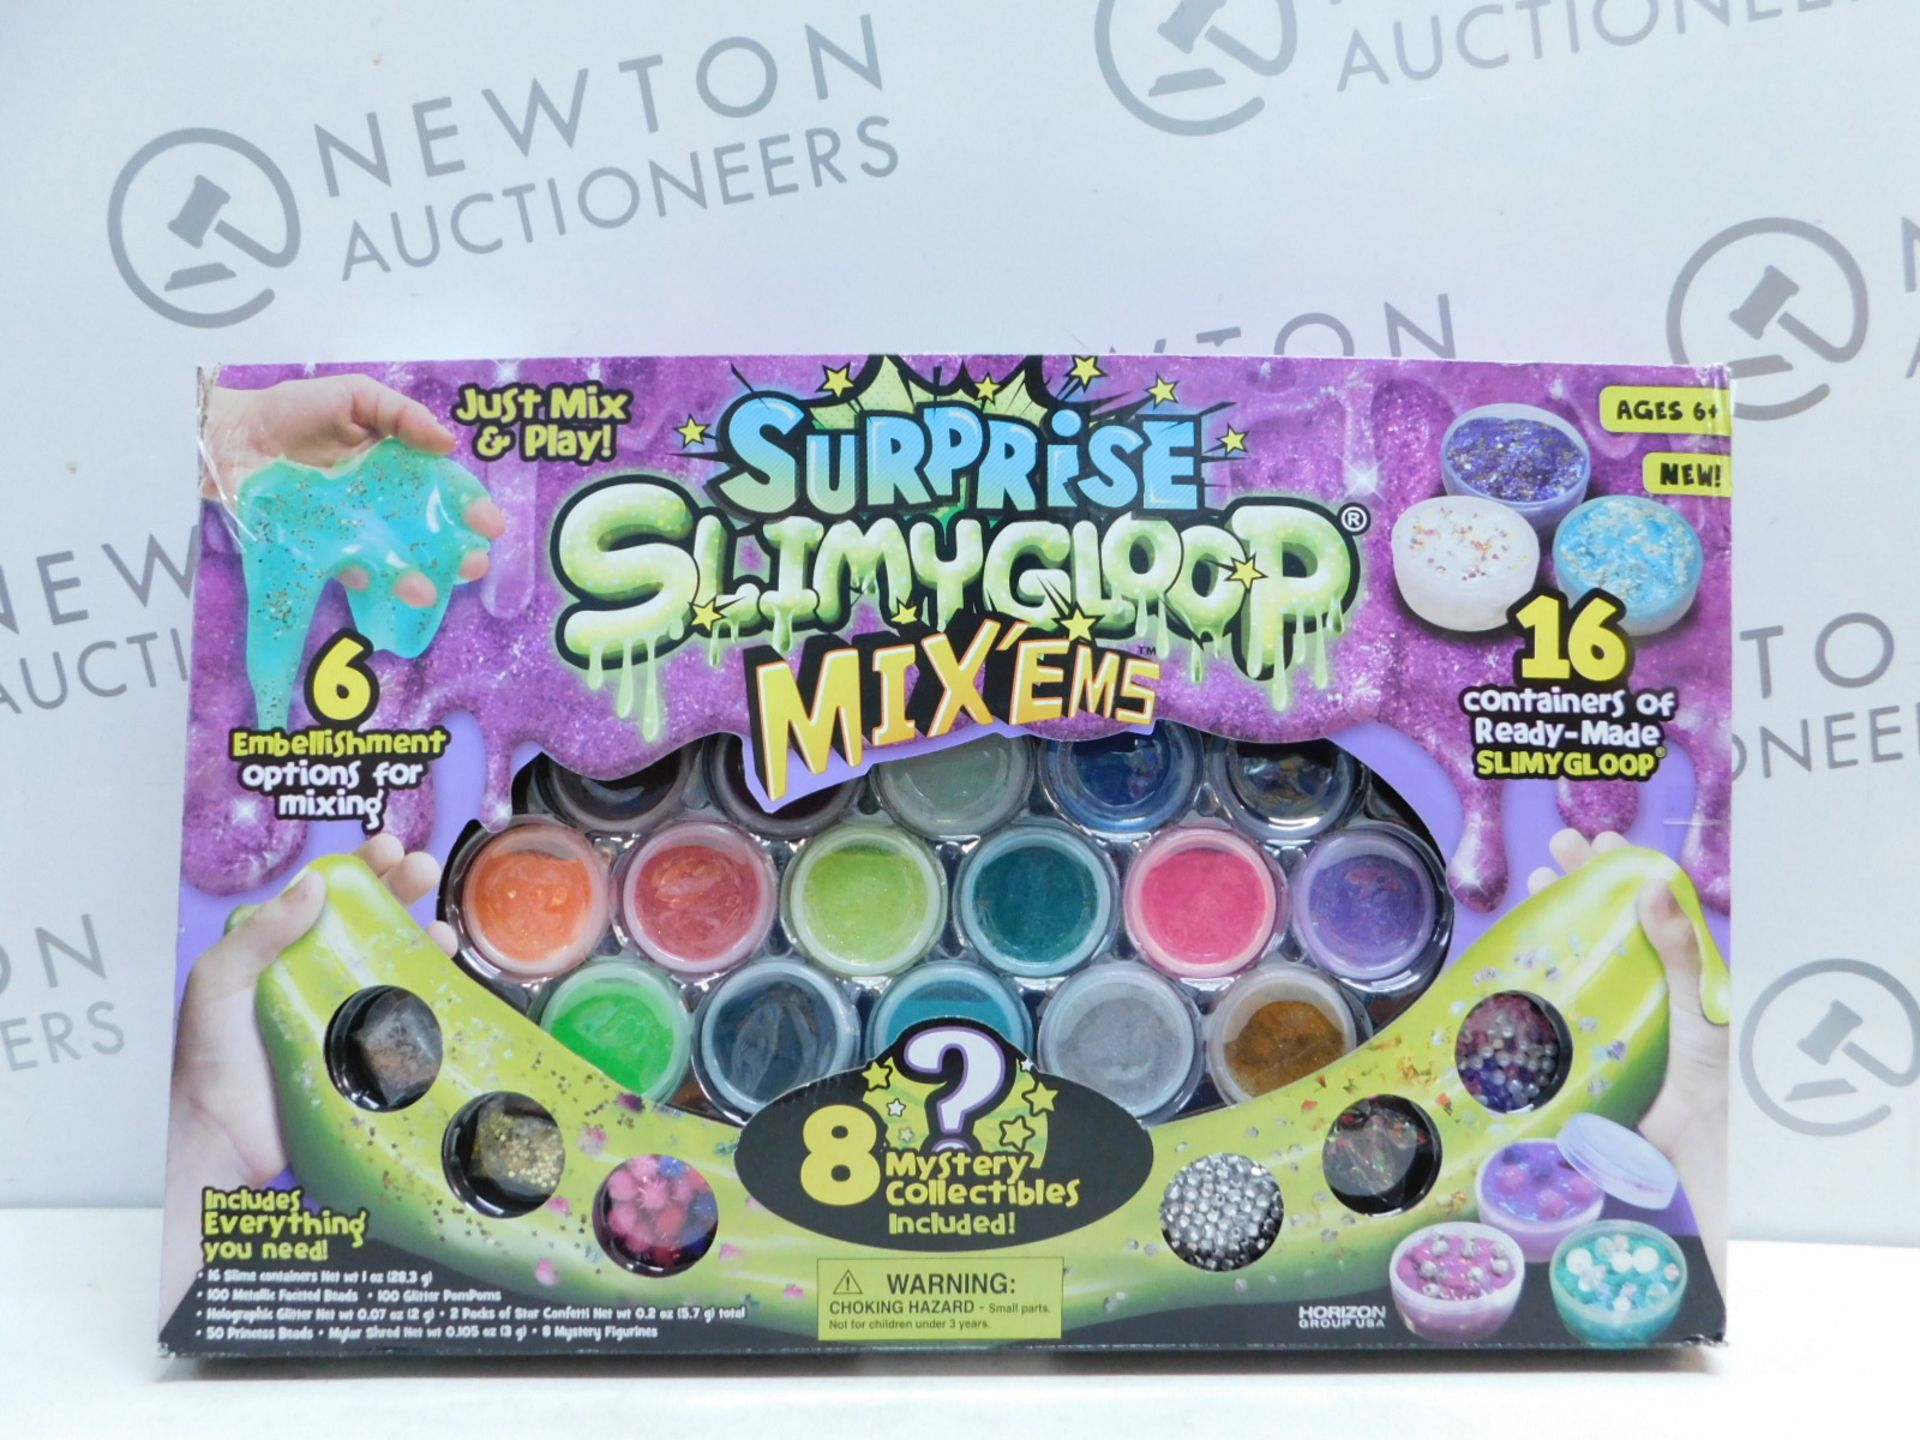 Lot 23 - 1 BOXED SLIMYGLOOP MIXEMS SLIME SET RRP £29.99